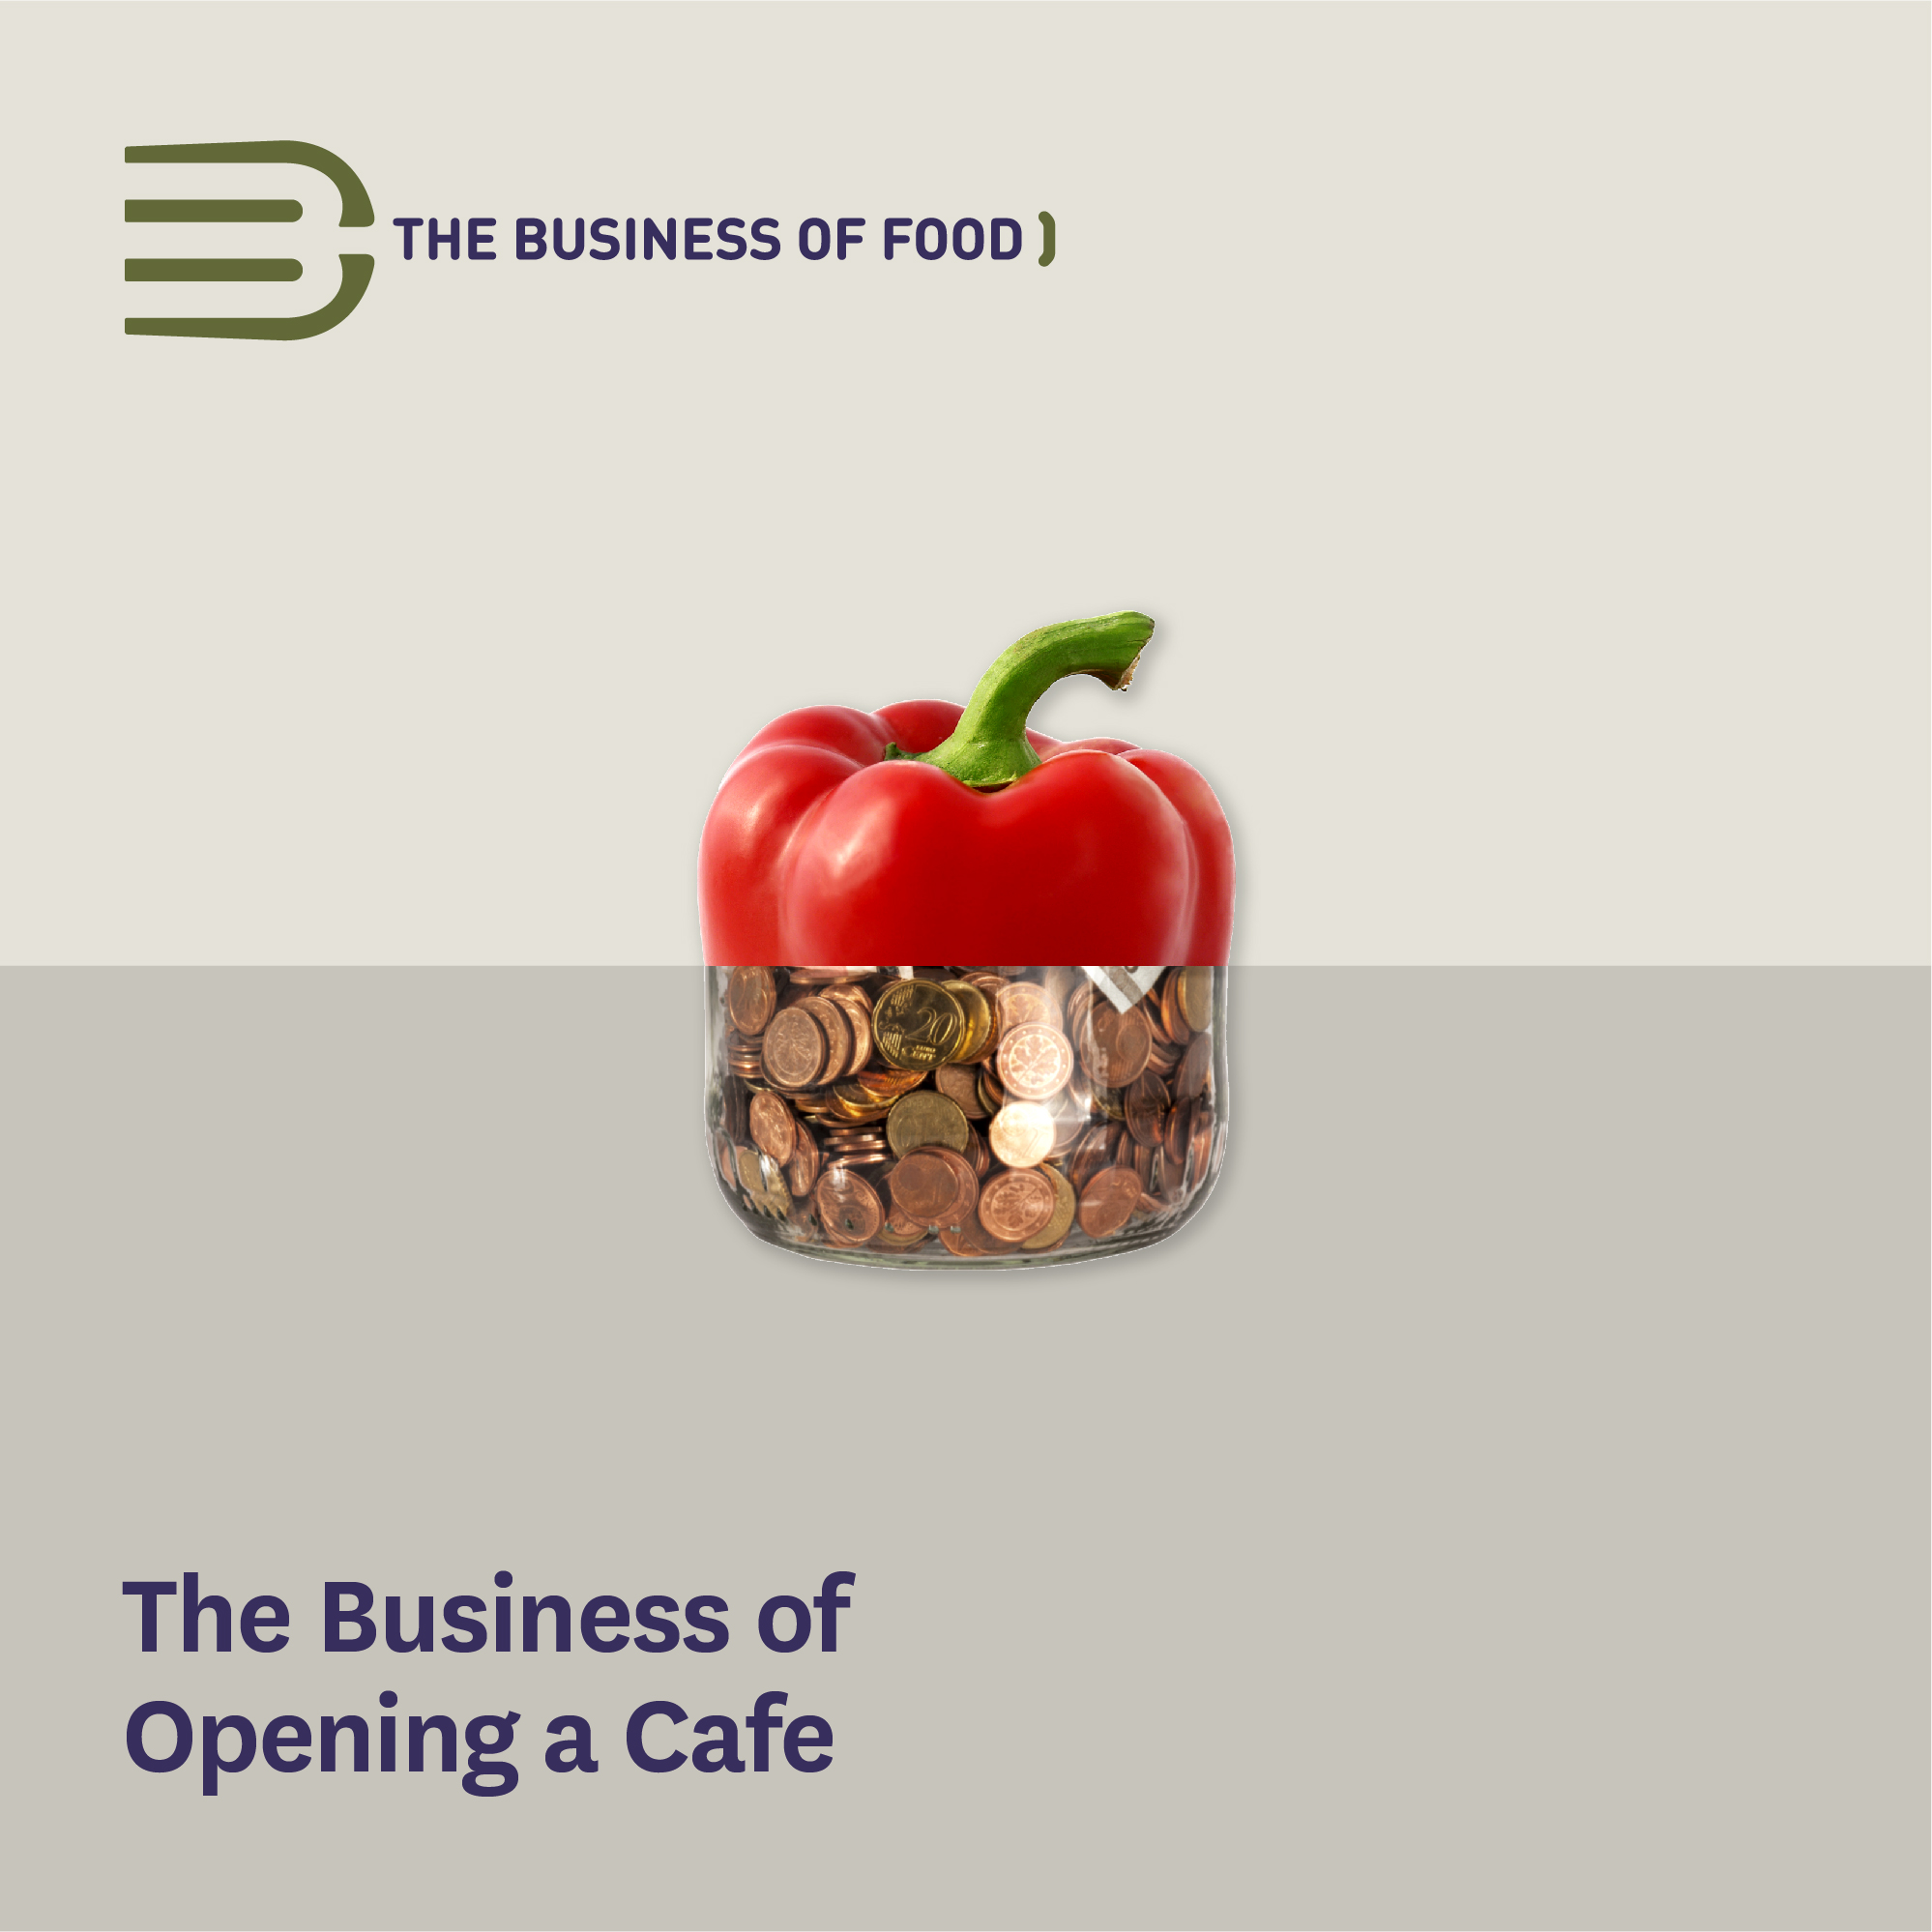 The Business of Opening a Cafe (Autumn 2019) from NOTS.ie